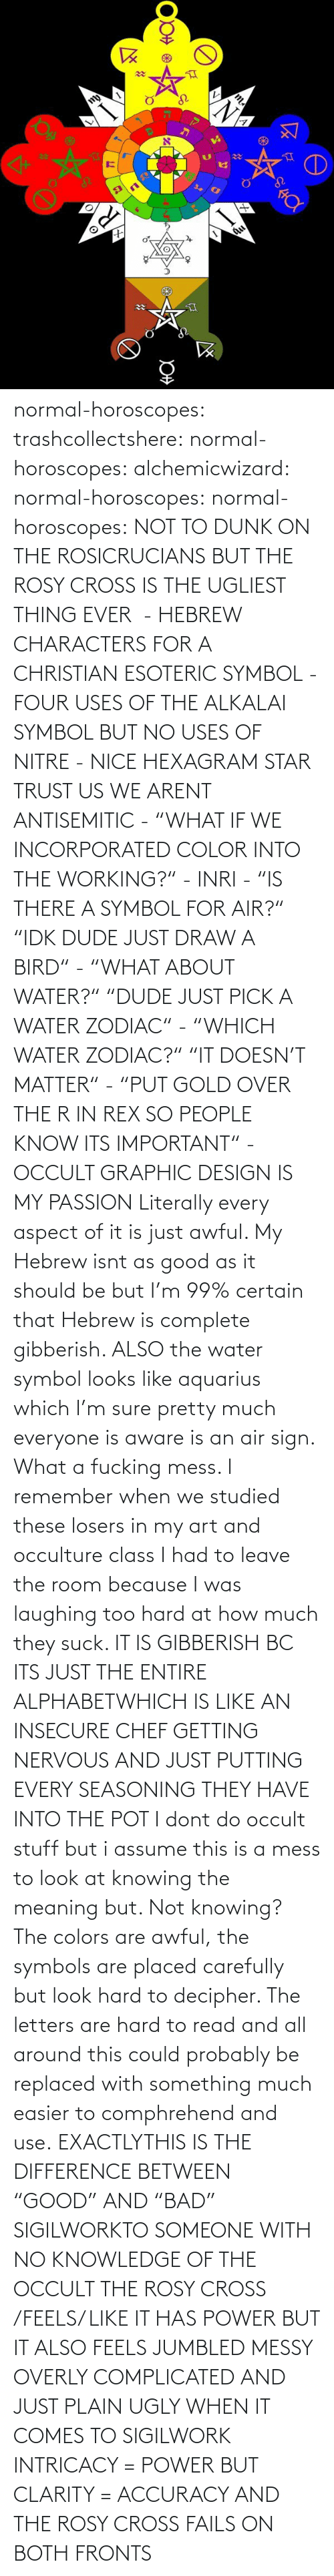 "pot: normal-horoscopes:  trashcollectshere: normal-horoscopes:   alchemicwizard:  normal-horoscopes:  normal-horoscopes: NOT TO DUNK ON THE ROSICRUCIANS BUT THE ROSY CROSS IS THE UGLIEST THING EVER  - HEBREW CHARACTERS FOR A CHRISTIAN ESOTERIC SYMBOL - FOUR USES OF THE ALKALAI SYMBOL BUT NO USES OF NITRE - NICE HEXAGRAM STAR TRUST US WE ARENT ANTISEMITIC - ""WHAT IF WE INCORPORATED COLOR INTO THE WORKING?"" - INRI - ""IS THERE A SYMBOL FOR AIR?"" ""IDK DUDE JUST DRAW A BIRD"" - ""WHAT ABOUT WATER?"" ""DUDE JUST PICK A WATER ZODIAC"" - ""WHICH WATER ZODIAC?"" ""IT DOESN'T MATTER"" - ""PUT GOLD OVER THE R IN REX SO PEOPLE KNOW ITS IMPORTANT"" - OCCULT GRAPHIC DESIGN IS MY PASSION  Literally every aspect of it is just awful. My Hebrew isnt as good as it should be but I'm 99% certain that Hebrew is complete gibberish.  ALSO the water symbol looks like aquarius which I'm sure pretty much everyone is aware is an air sign. What a fucking mess.  I remember when we studied these losers in my art and occulture class I had to leave the room because I was laughing too hard at how much they suck.   IT IS GIBBERISH BC ITS JUST THE ENTIRE ALPHABETWHICH IS LIKE AN INSECURE CHEF GETTING NERVOUS AND JUST PUTTING EVERY SEASONING THEY HAVE INTO THE POT     I dont do occult stuff but i assume this is a mess to look at knowing the meaning but. Not knowing? The colors are awful, the symbols are placed carefully but look hard to decipher. The letters are hard to read and all around this could probably be replaced with something much easier to comphrehend and use.  EXACTLYTHIS IS THE DIFFERENCE BETWEEN ""GOOD"" AND ""BAD"" SIGILWORKTO SOMEONE WITH NO KNOWLEDGE OF THE OCCULT THE ROSY CROSS /FEELS/ LIKE IT HAS POWER BUT IT ALSO FEELS JUMBLED MESSY OVERLY COMPLICATED AND JUST PLAIN UGLY WHEN IT COMES TO SIGILWORK INTRICACY = POWER BUT CLARITY = ACCURACY AND THE ROSY CROSS FAILS ON BOTH FRONTS"